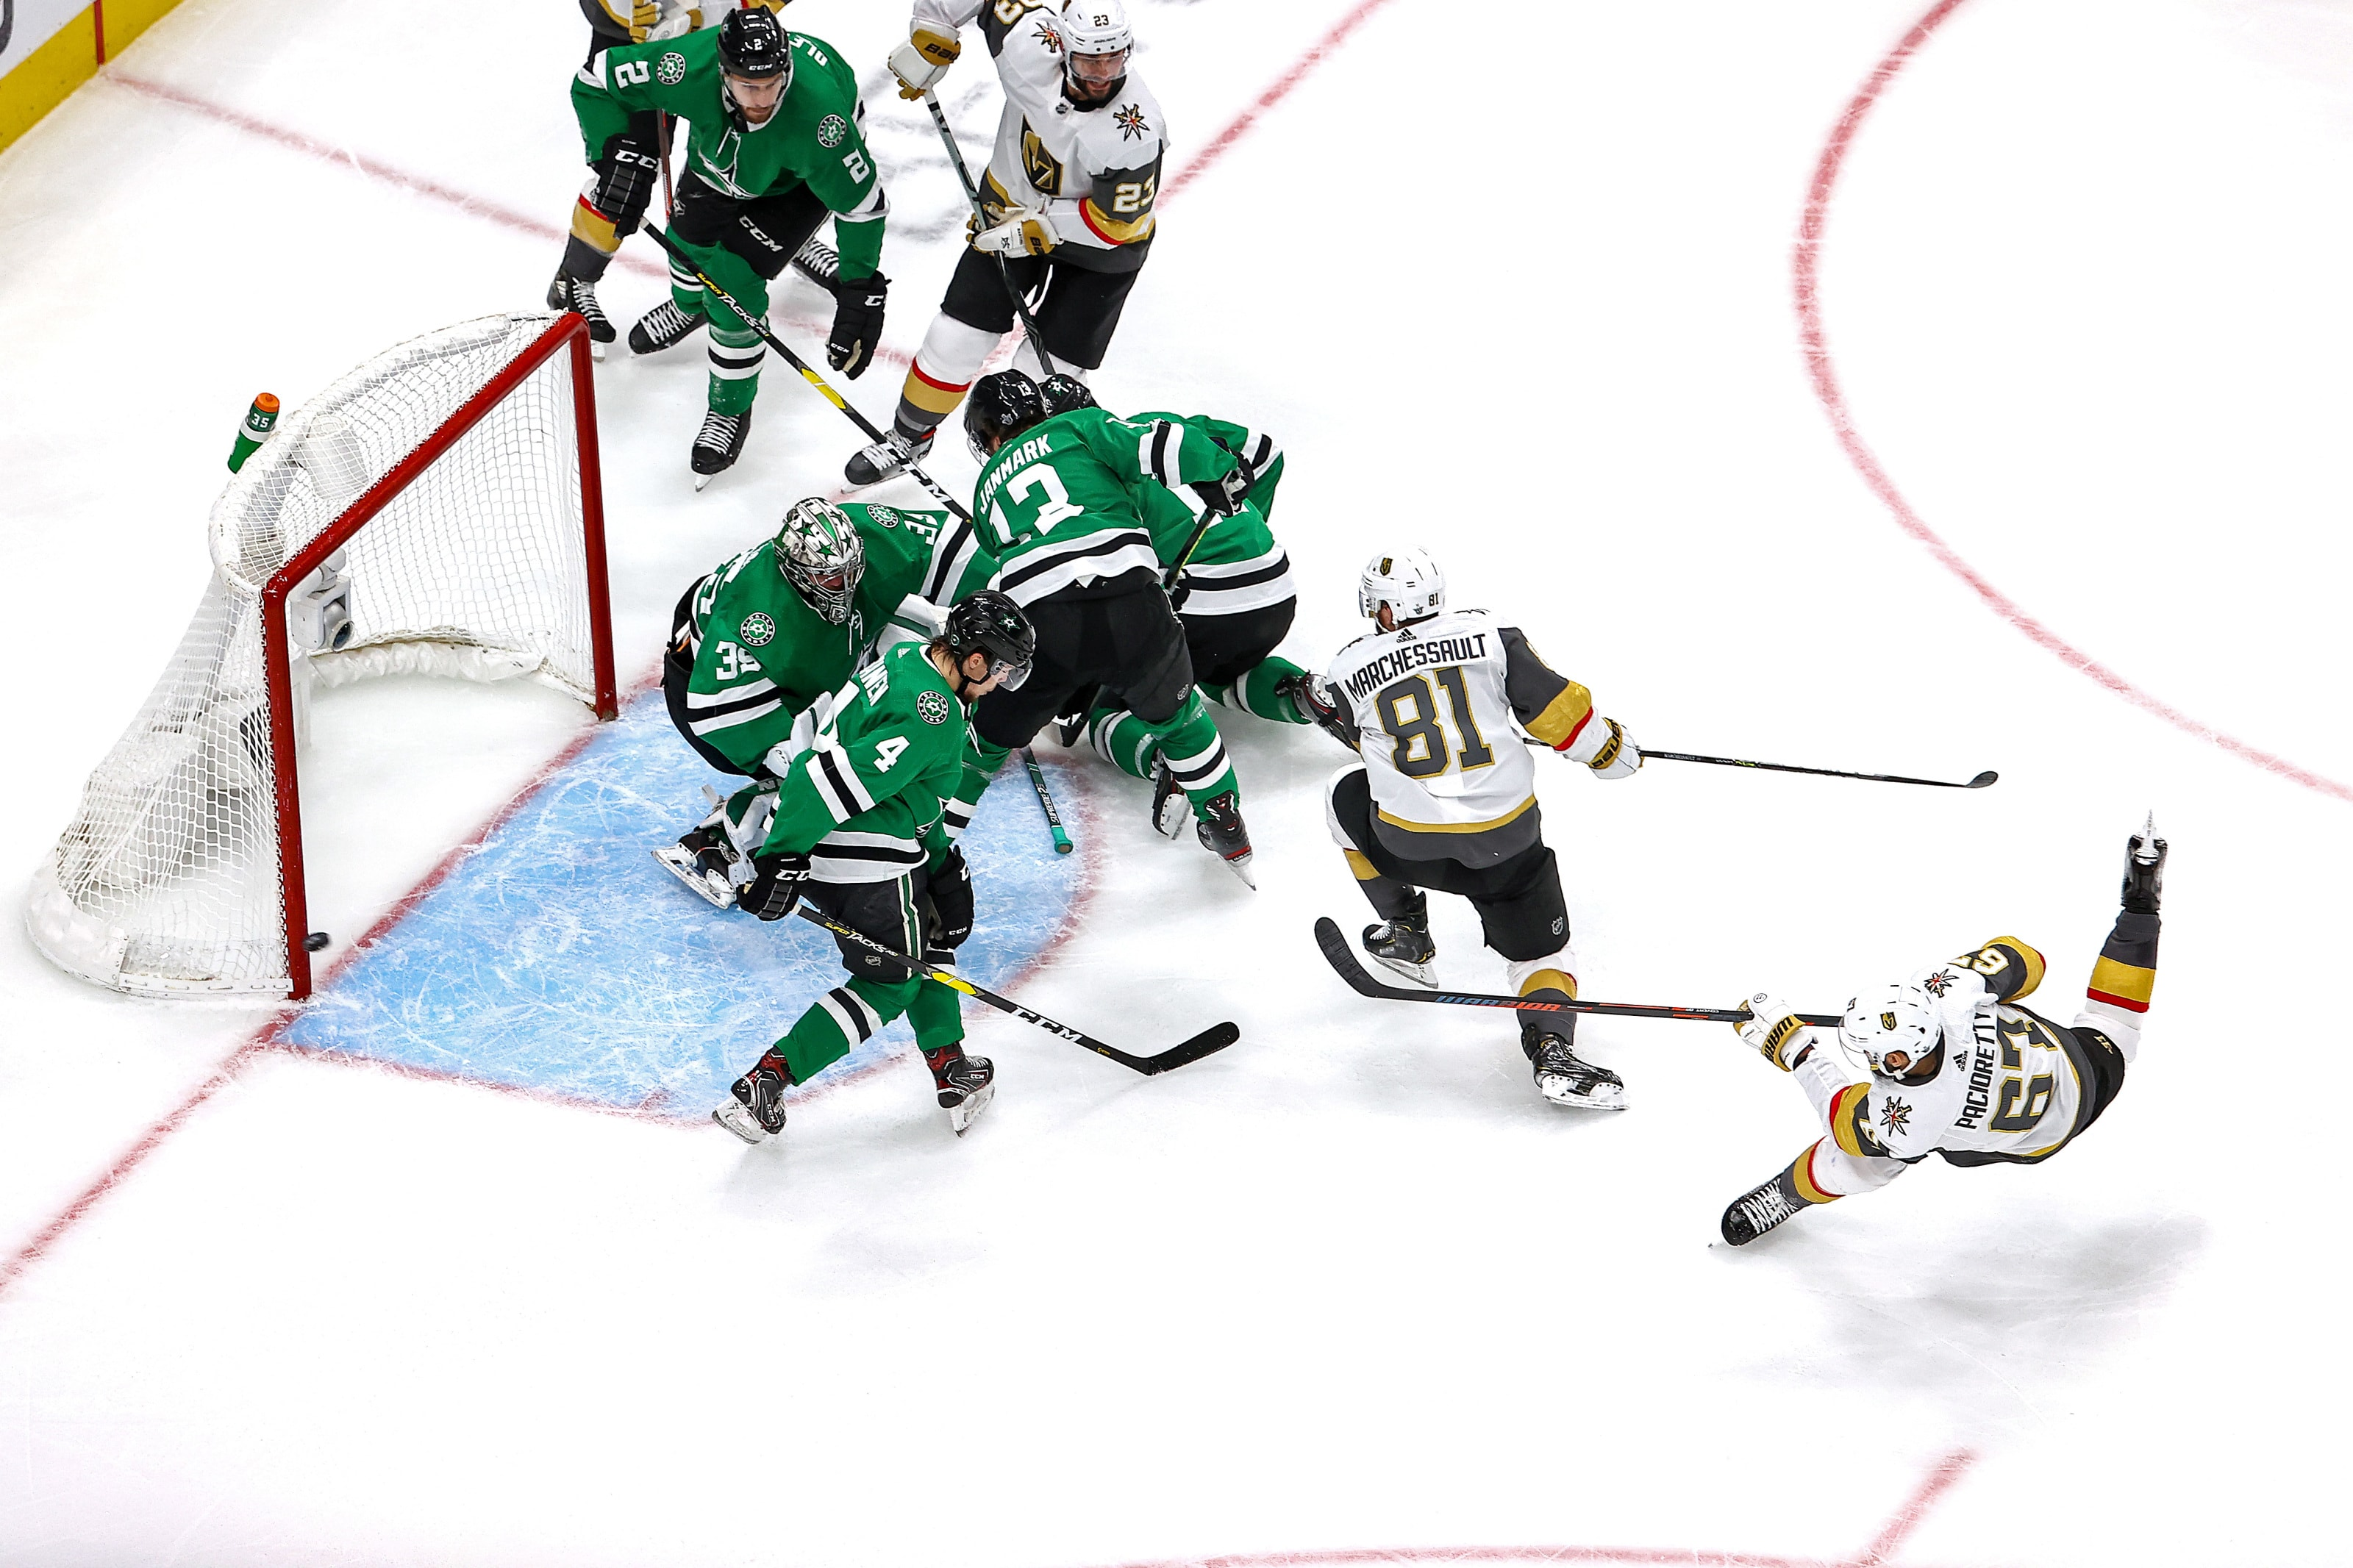 Max Pacioretty #67 of the Vegas Golden Knights hits the post on a shot against Anton Khudobin #35 of the Dallas Stars